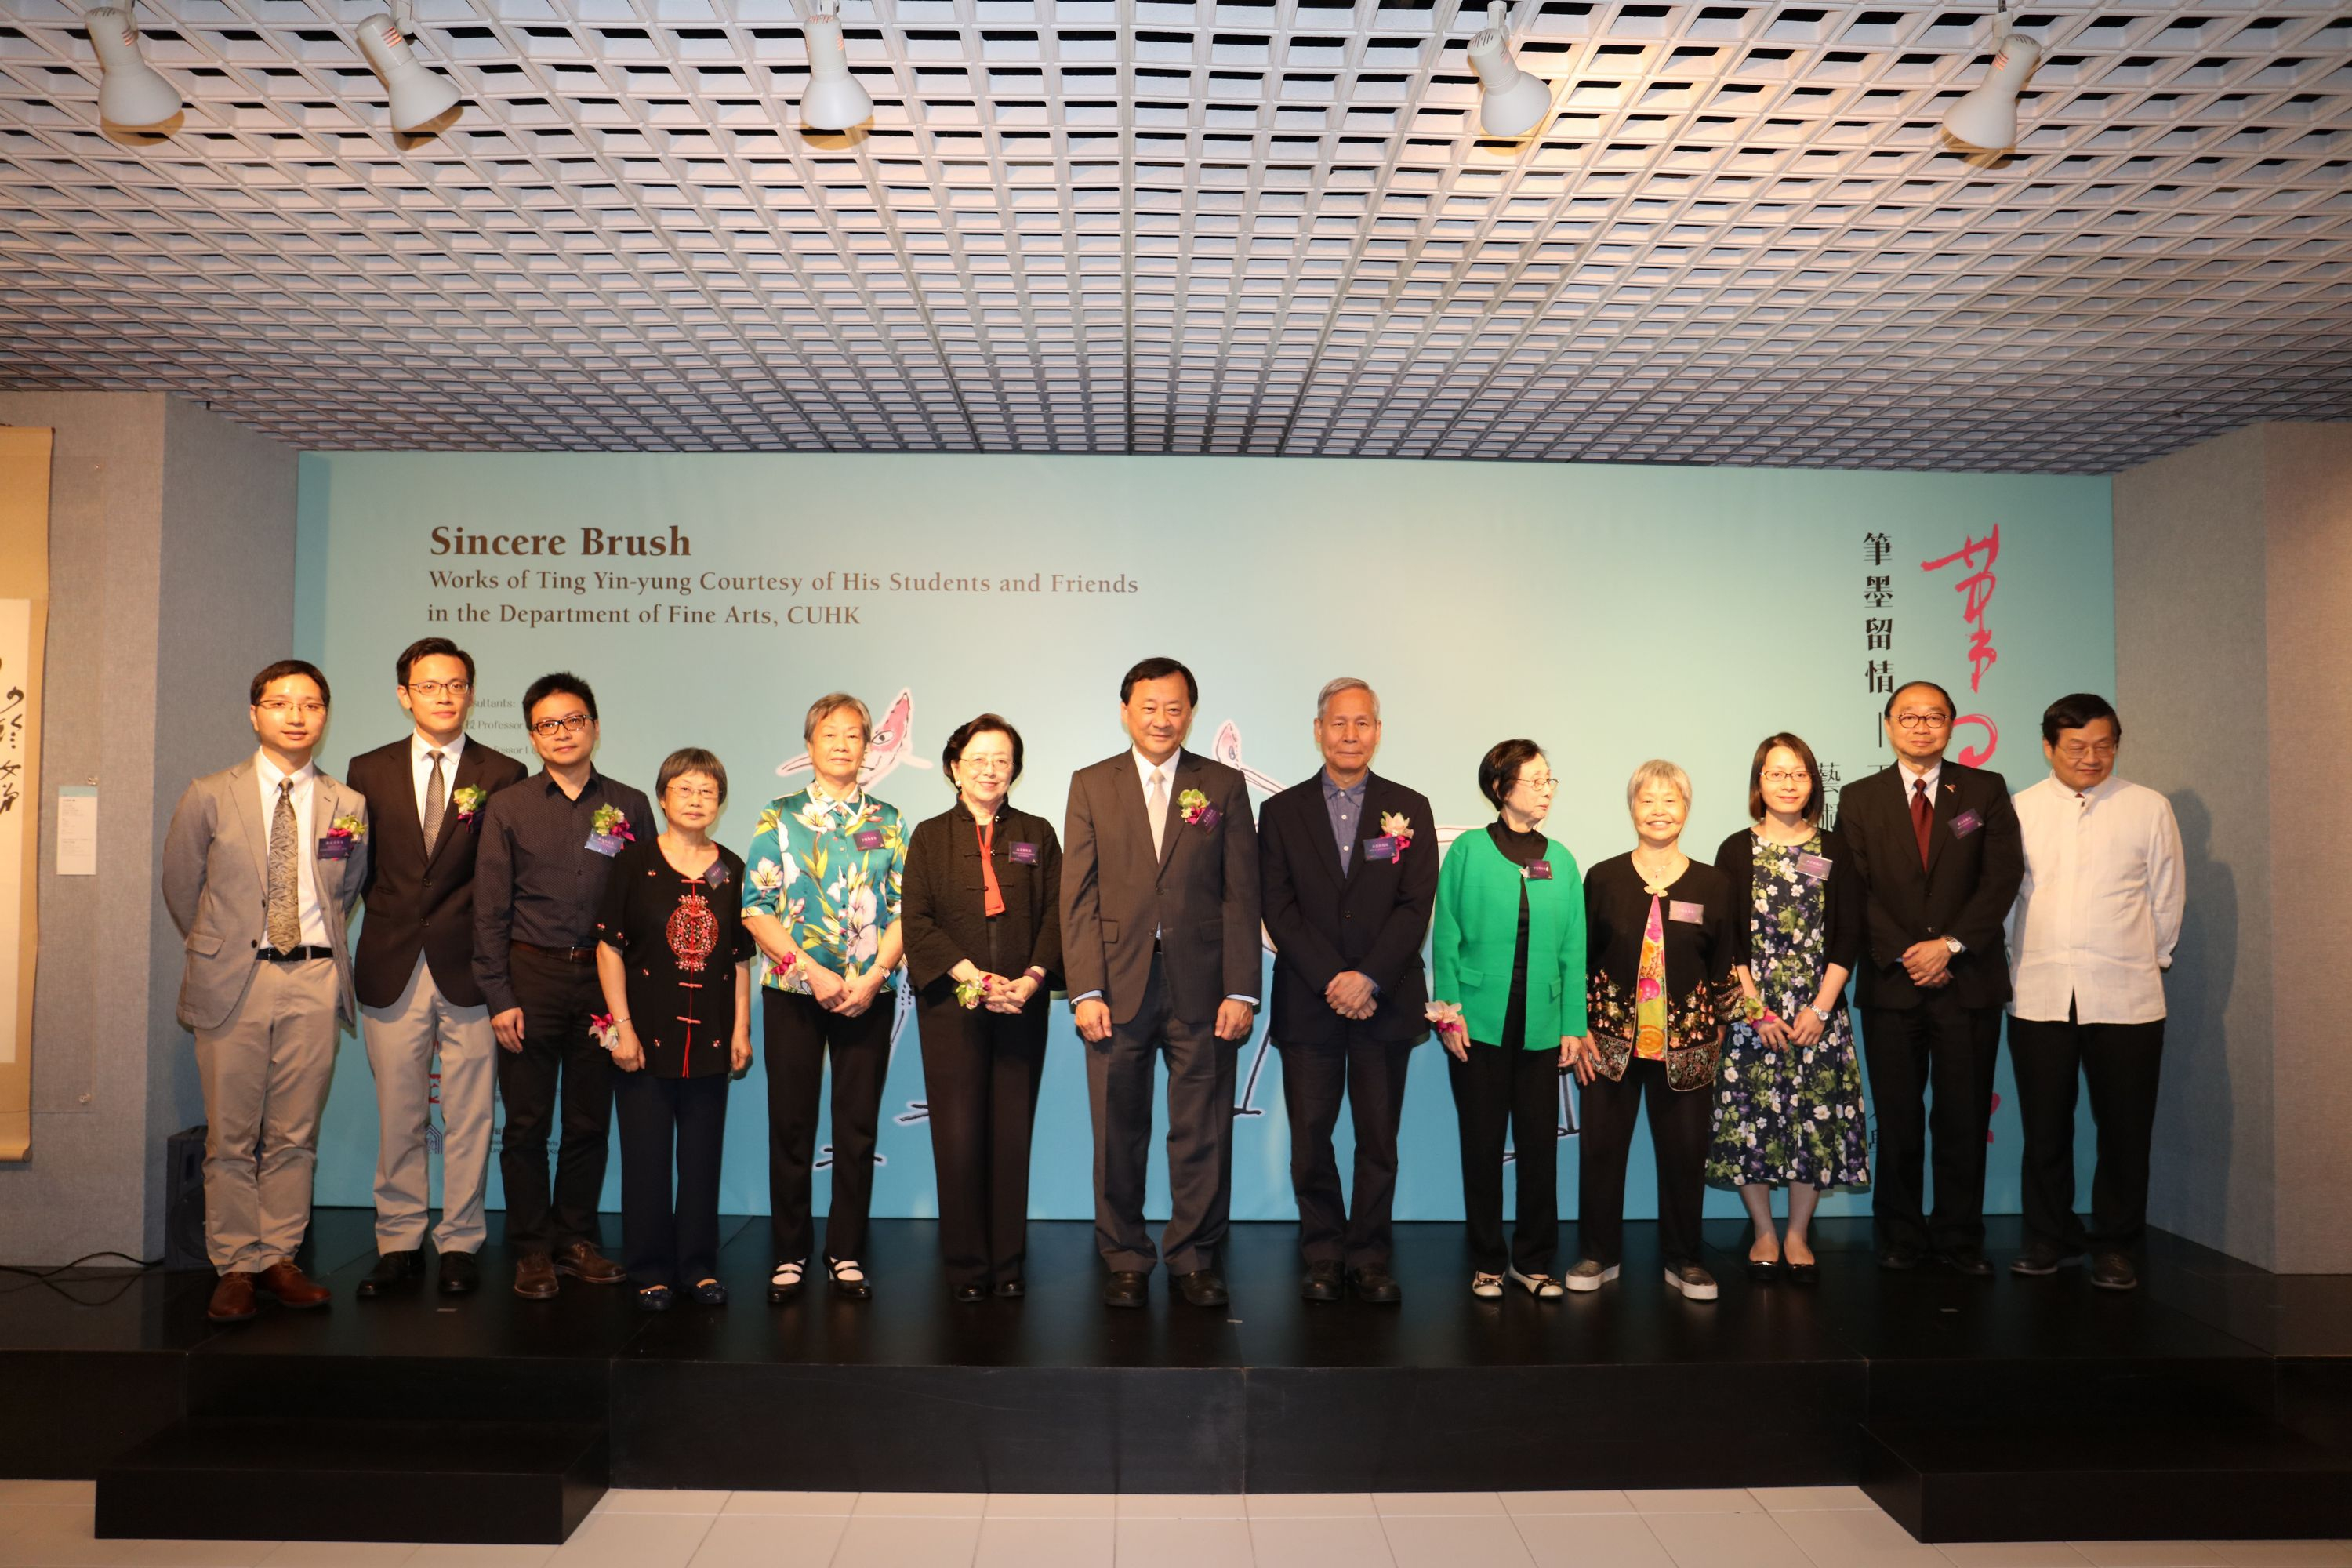 (From left) Dr. Phil Chan, Research-Assistant Curator (Painting and Calligraphy) of the Art Museum, CUHK; Professor Josh Yiu, Director of the Art Museum, CUHK; Mr. Lo Kwan Chi, Chairman of The Alumni Association of Fine Arts Department, CUHK; Ting Lai Ting; Ting Lan Sai; Professor Mayching Kao, former Professor of Fine Arts and former Director of the Art Museum, CUHK; Professor Benjamin W. Wah, Provost, CUHK; Professor Lee Yun-woon, former Chairman of the Department of Fine Arts, CUHK; Ting Lo Sai; Ting Lai Kar; Professor Wan Chui Ki, Acting Chairman of the Department of Fine Arts, CUHK; Professor Henry N.C. Wong, Head of New Asia College, CUHK; Professor Leung Yuen-sang, Director of the Institute of Chinese Studies, CUHK officiate at the ribbon-cutting ceremony for the exhibition.